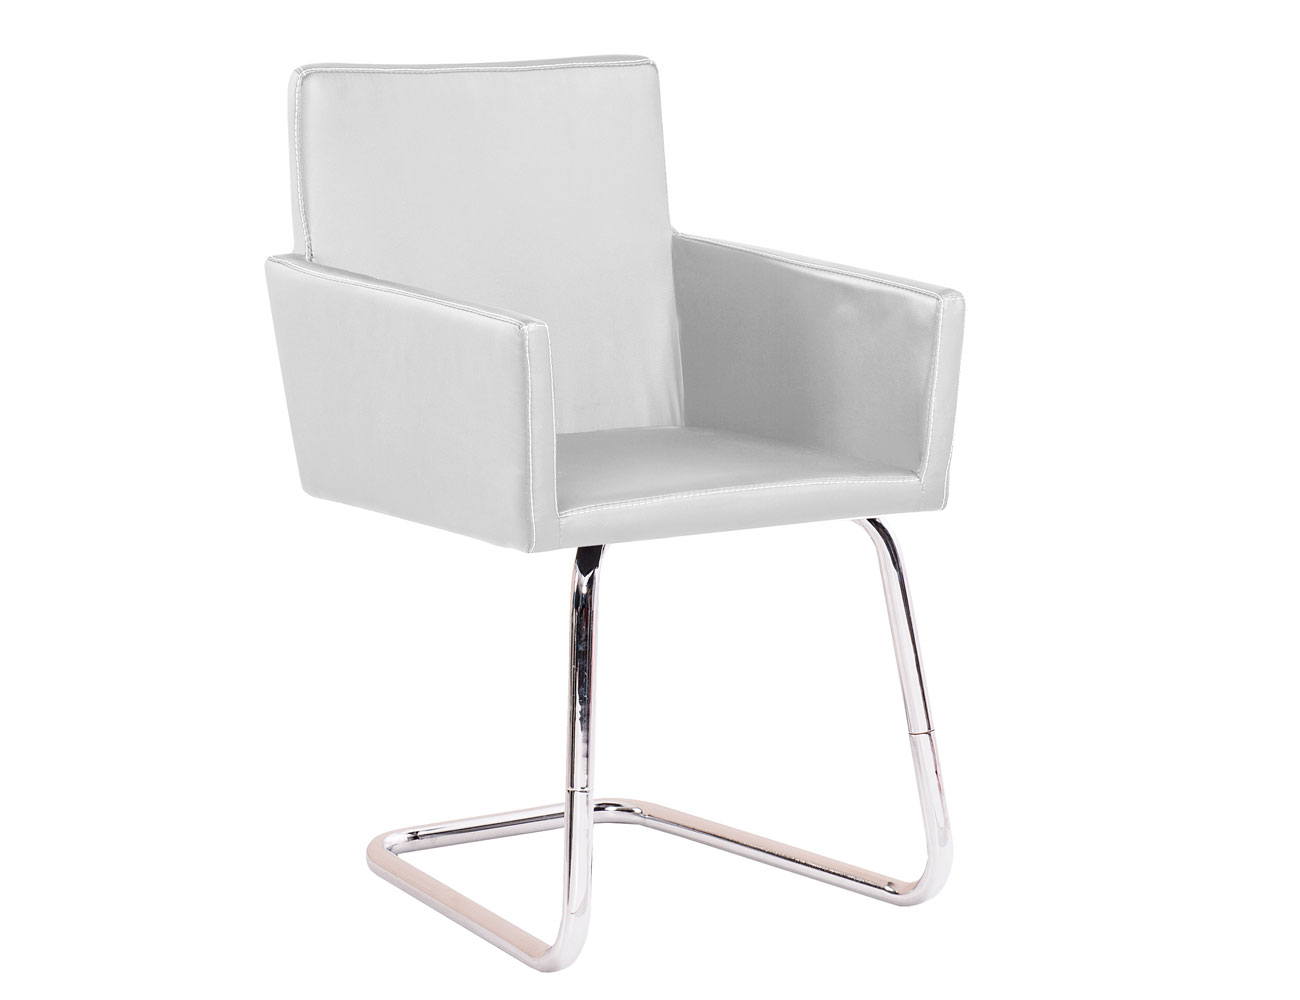 Silla confidente polipiel brazo blanco